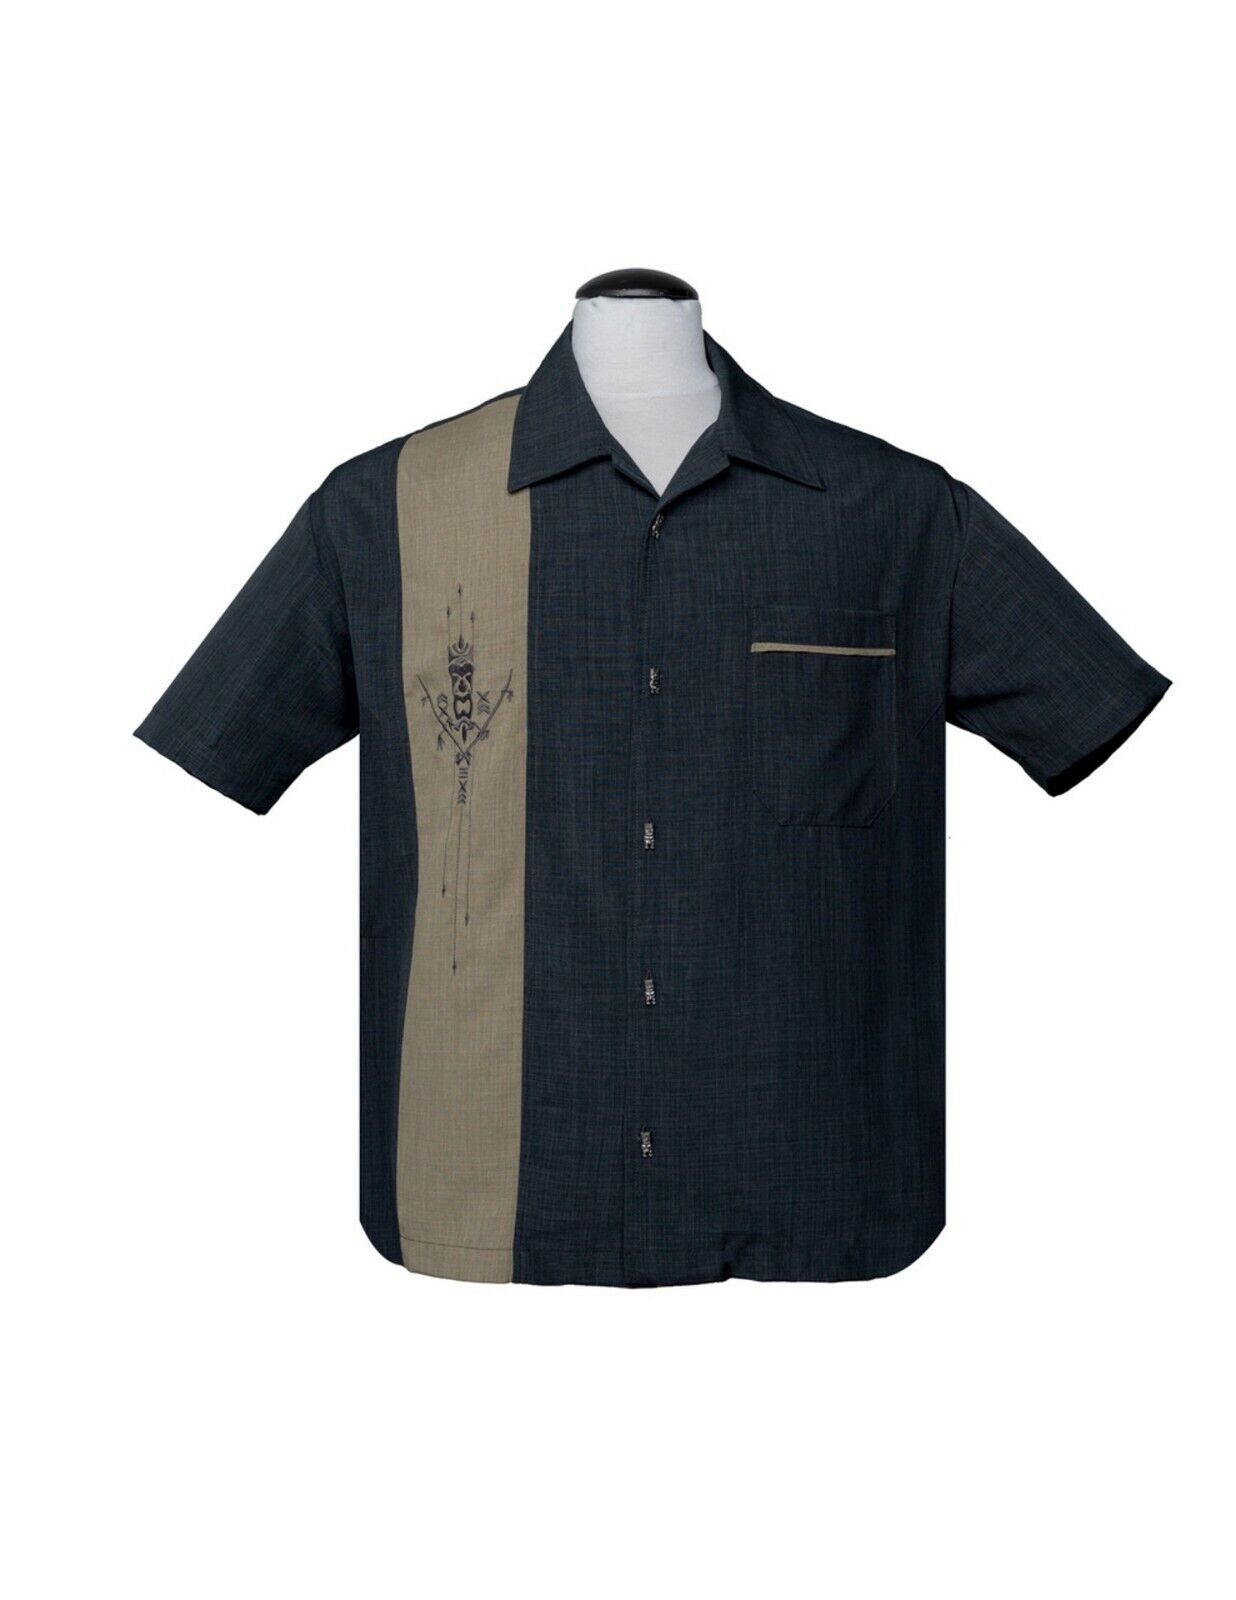 Steady Fly Me to The Moon in Black-Stone Bowling Shirt Retro Style Inspired